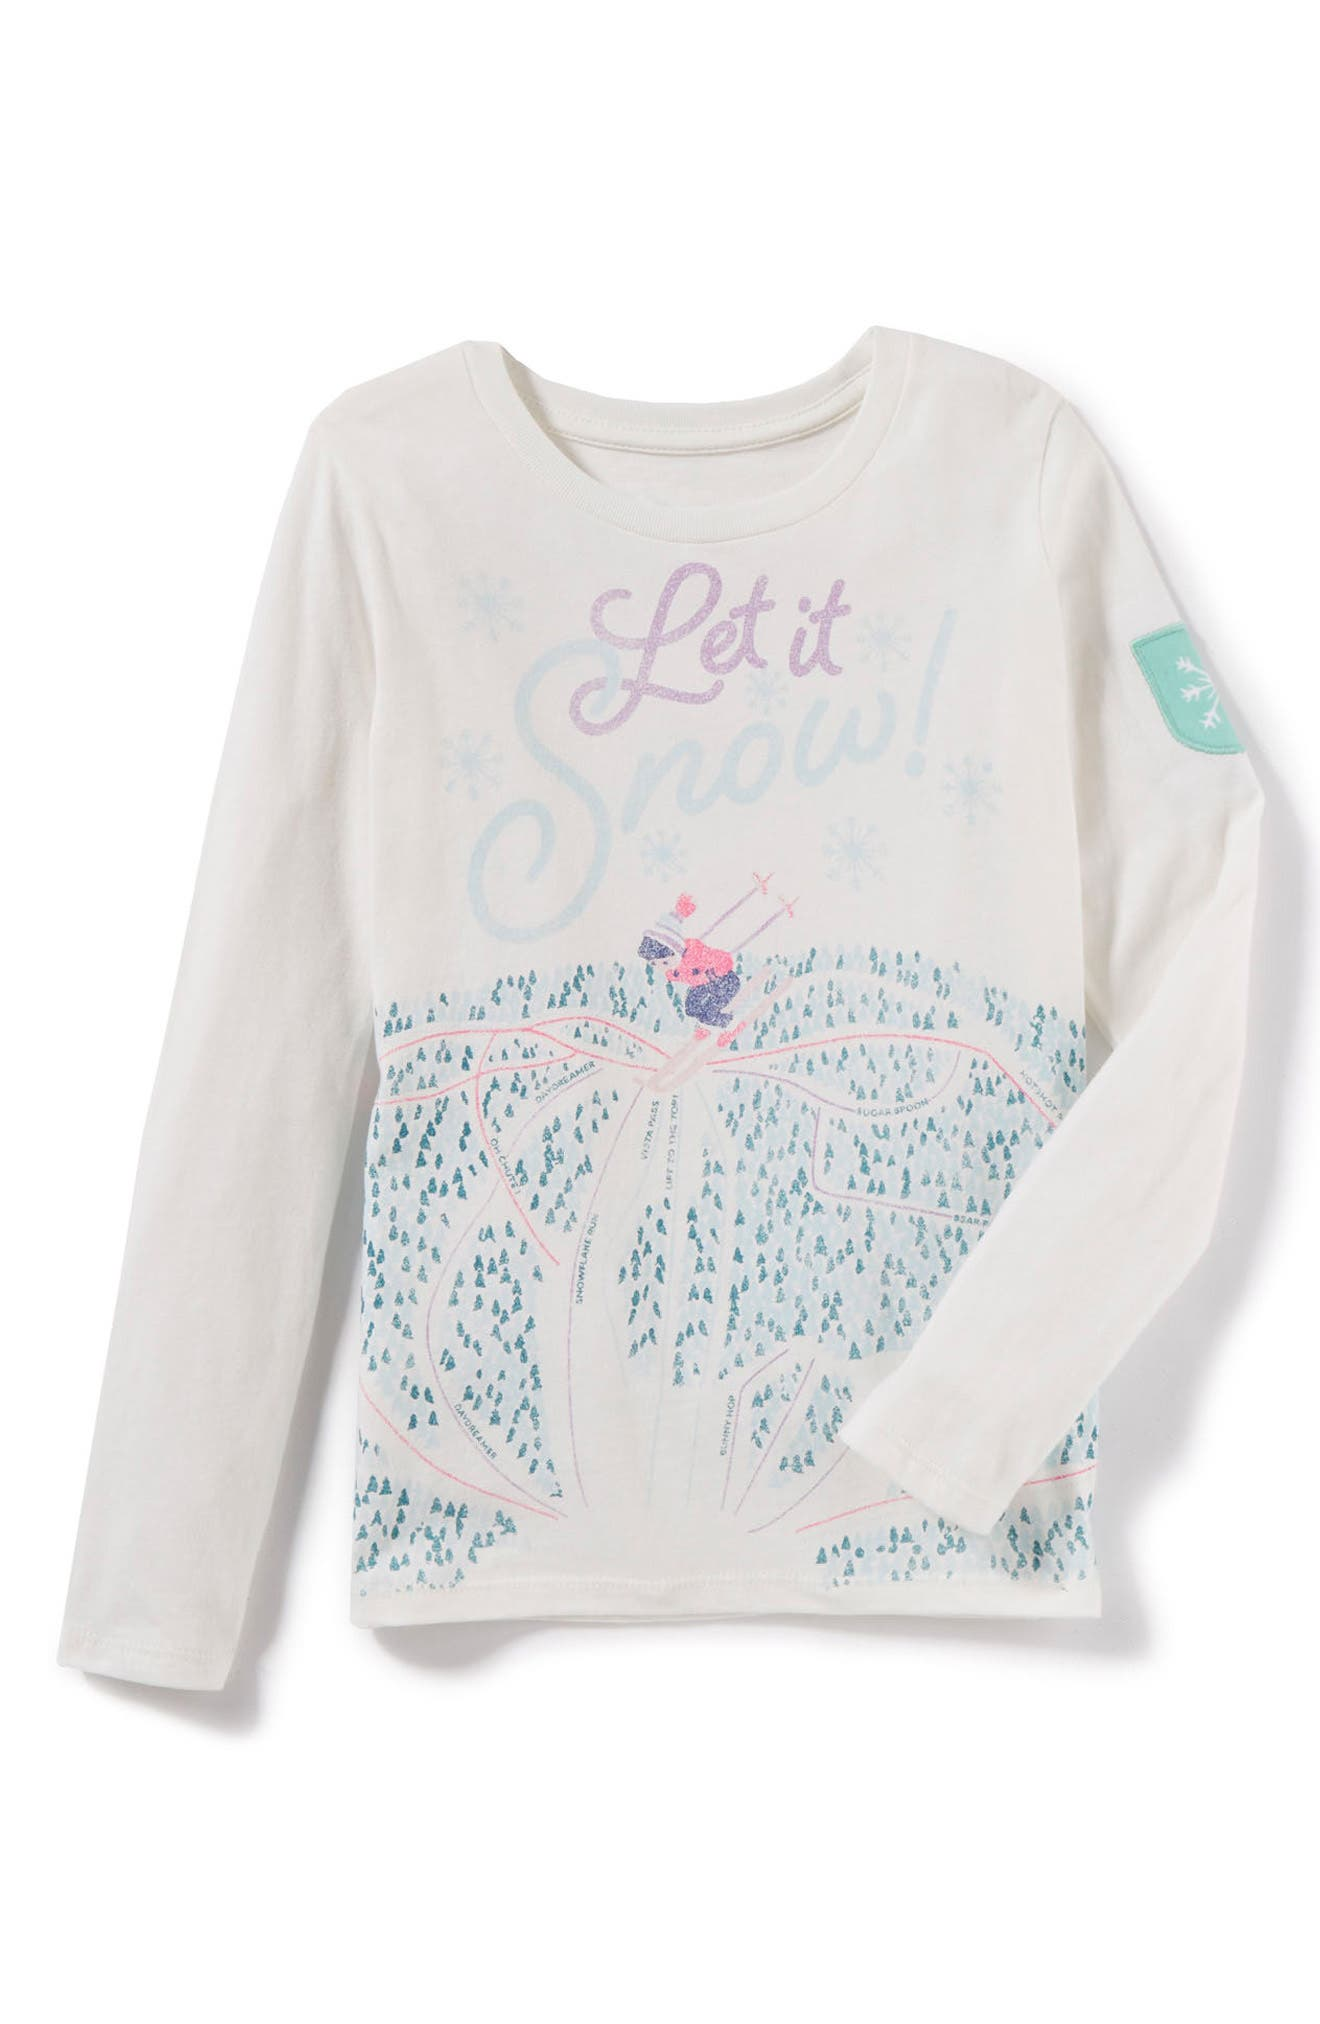 Let it Snow Tee,                             Main thumbnail 1, color,                             Ivory